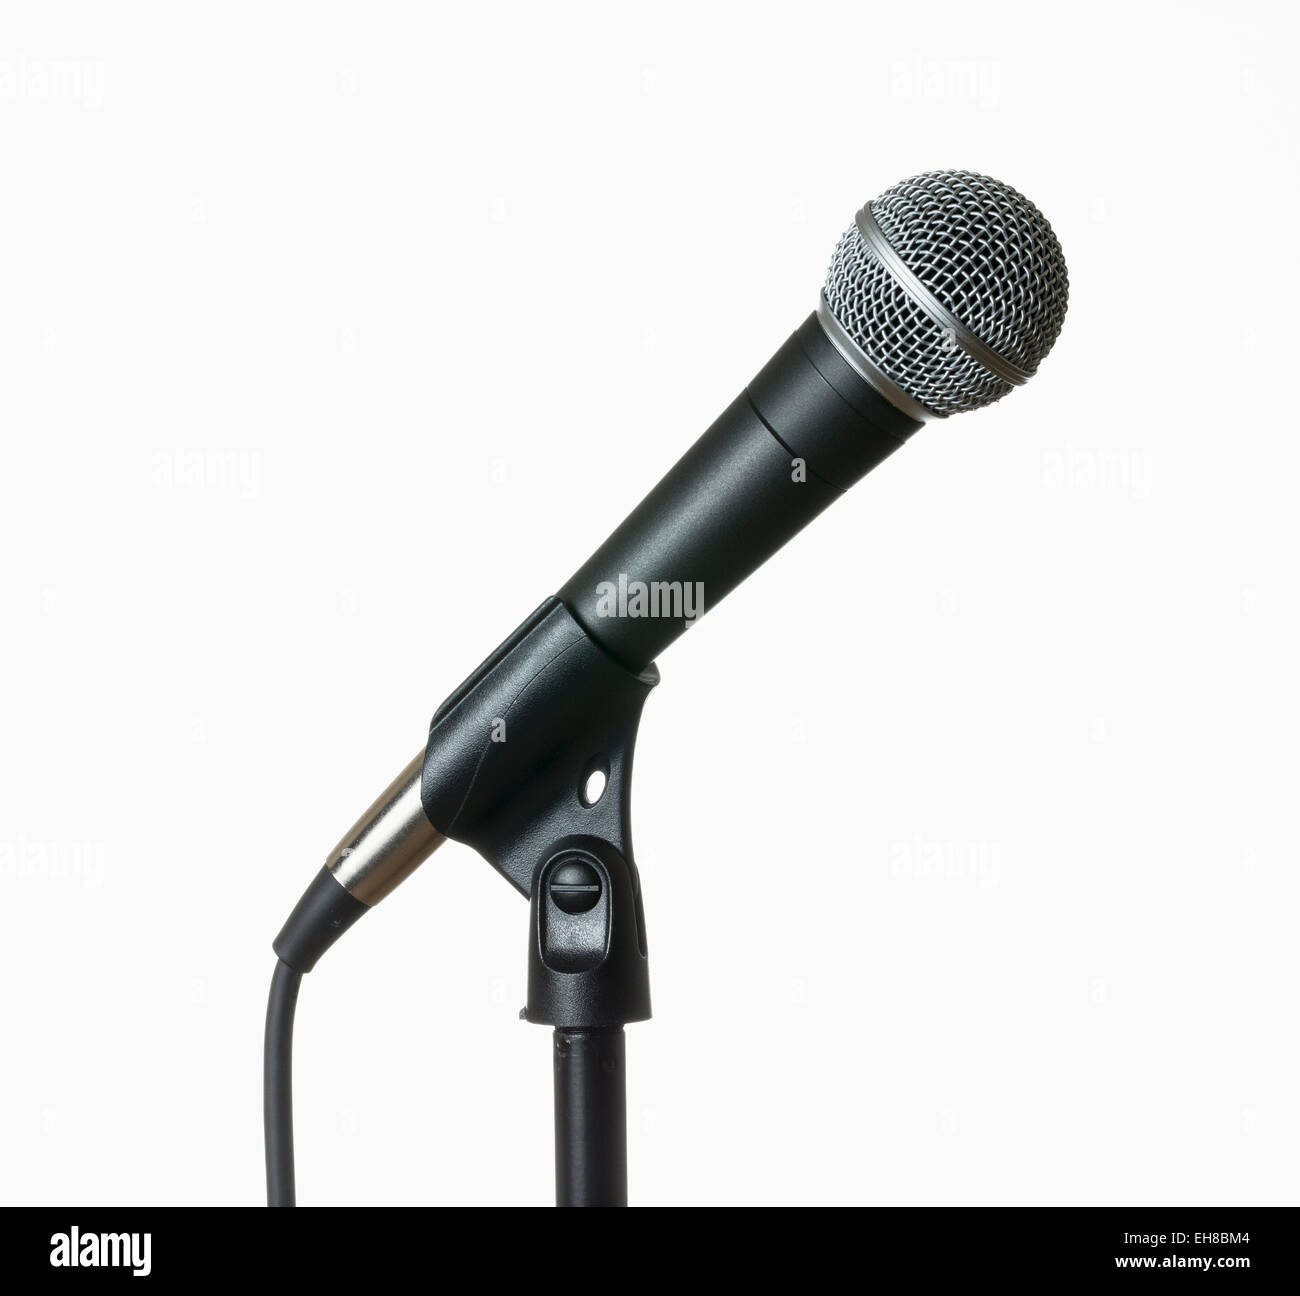 Microphone - Stock Image